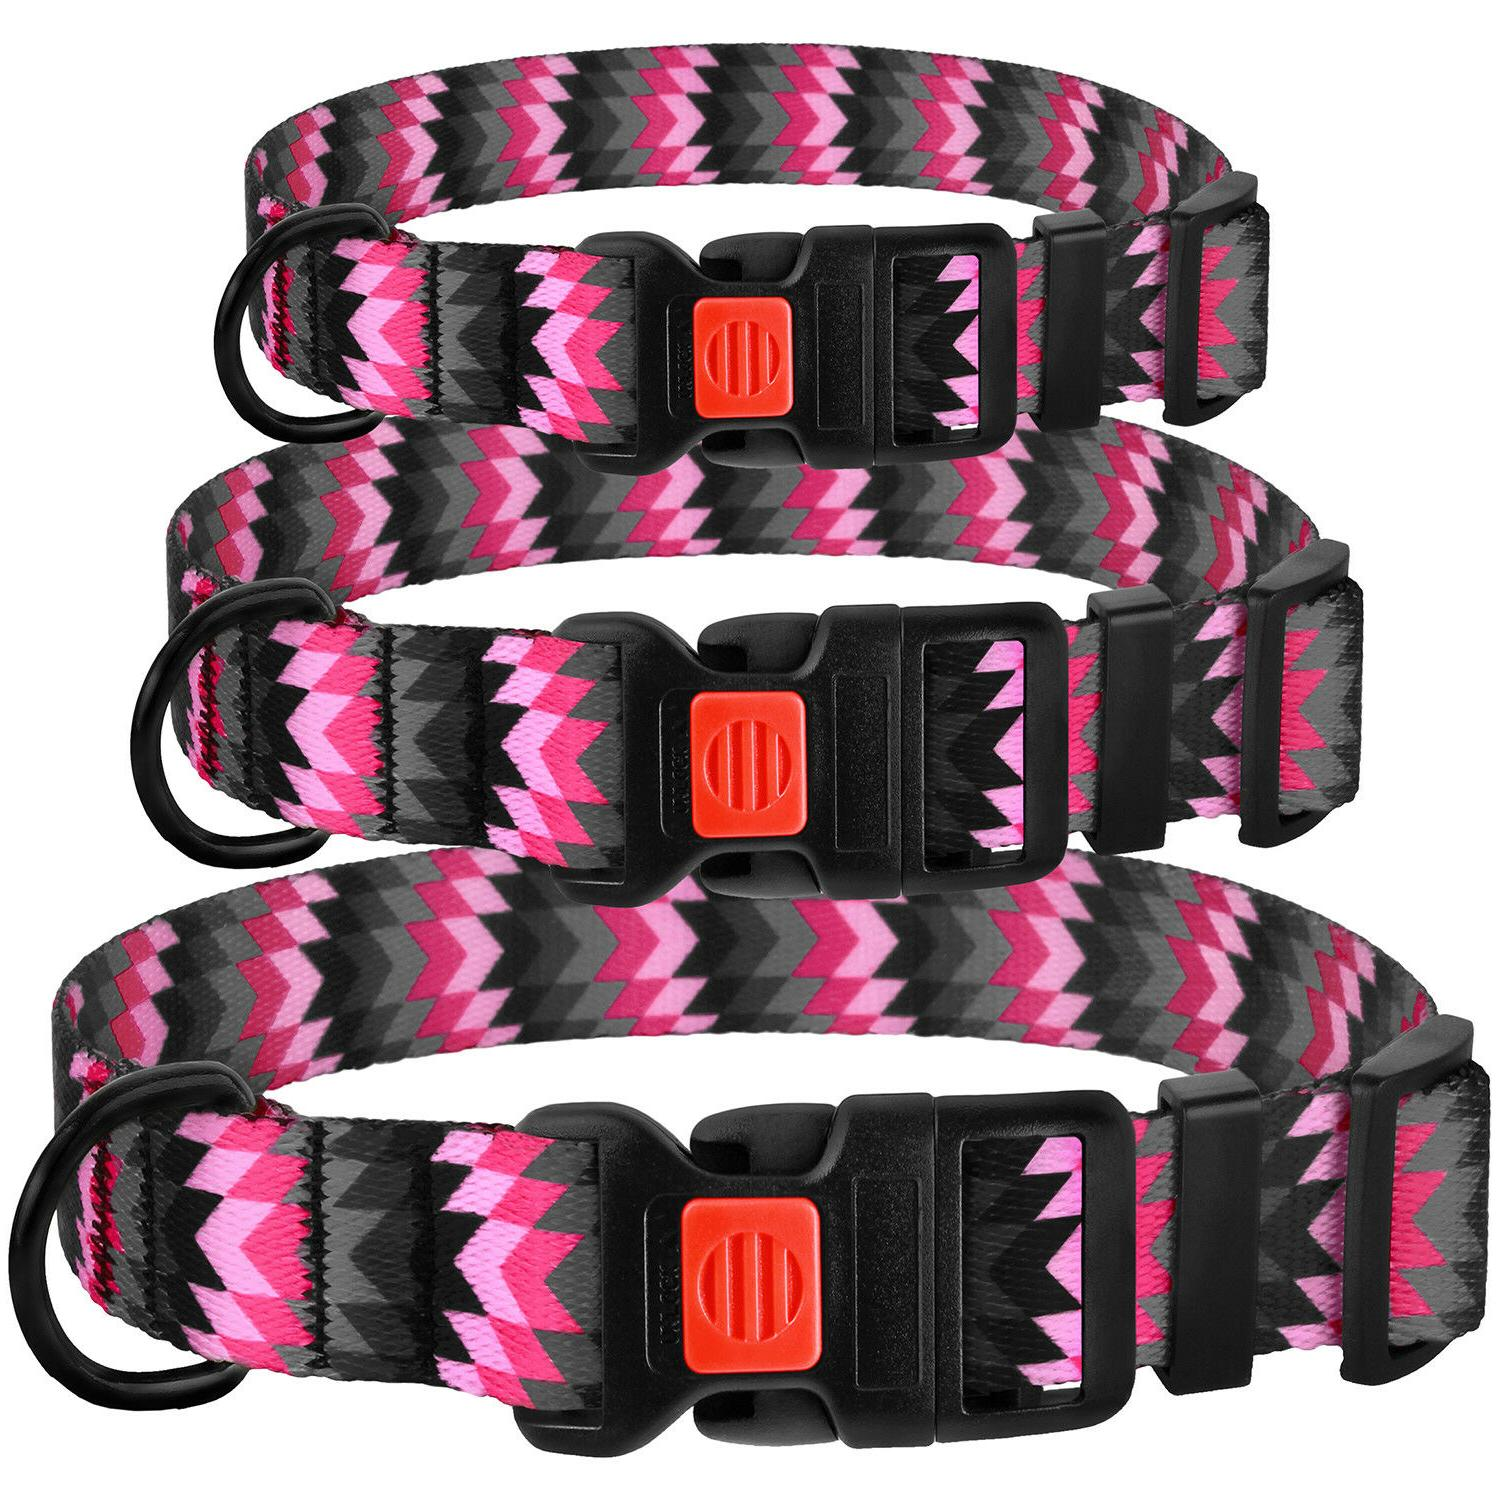 Buckle Dogs L XL